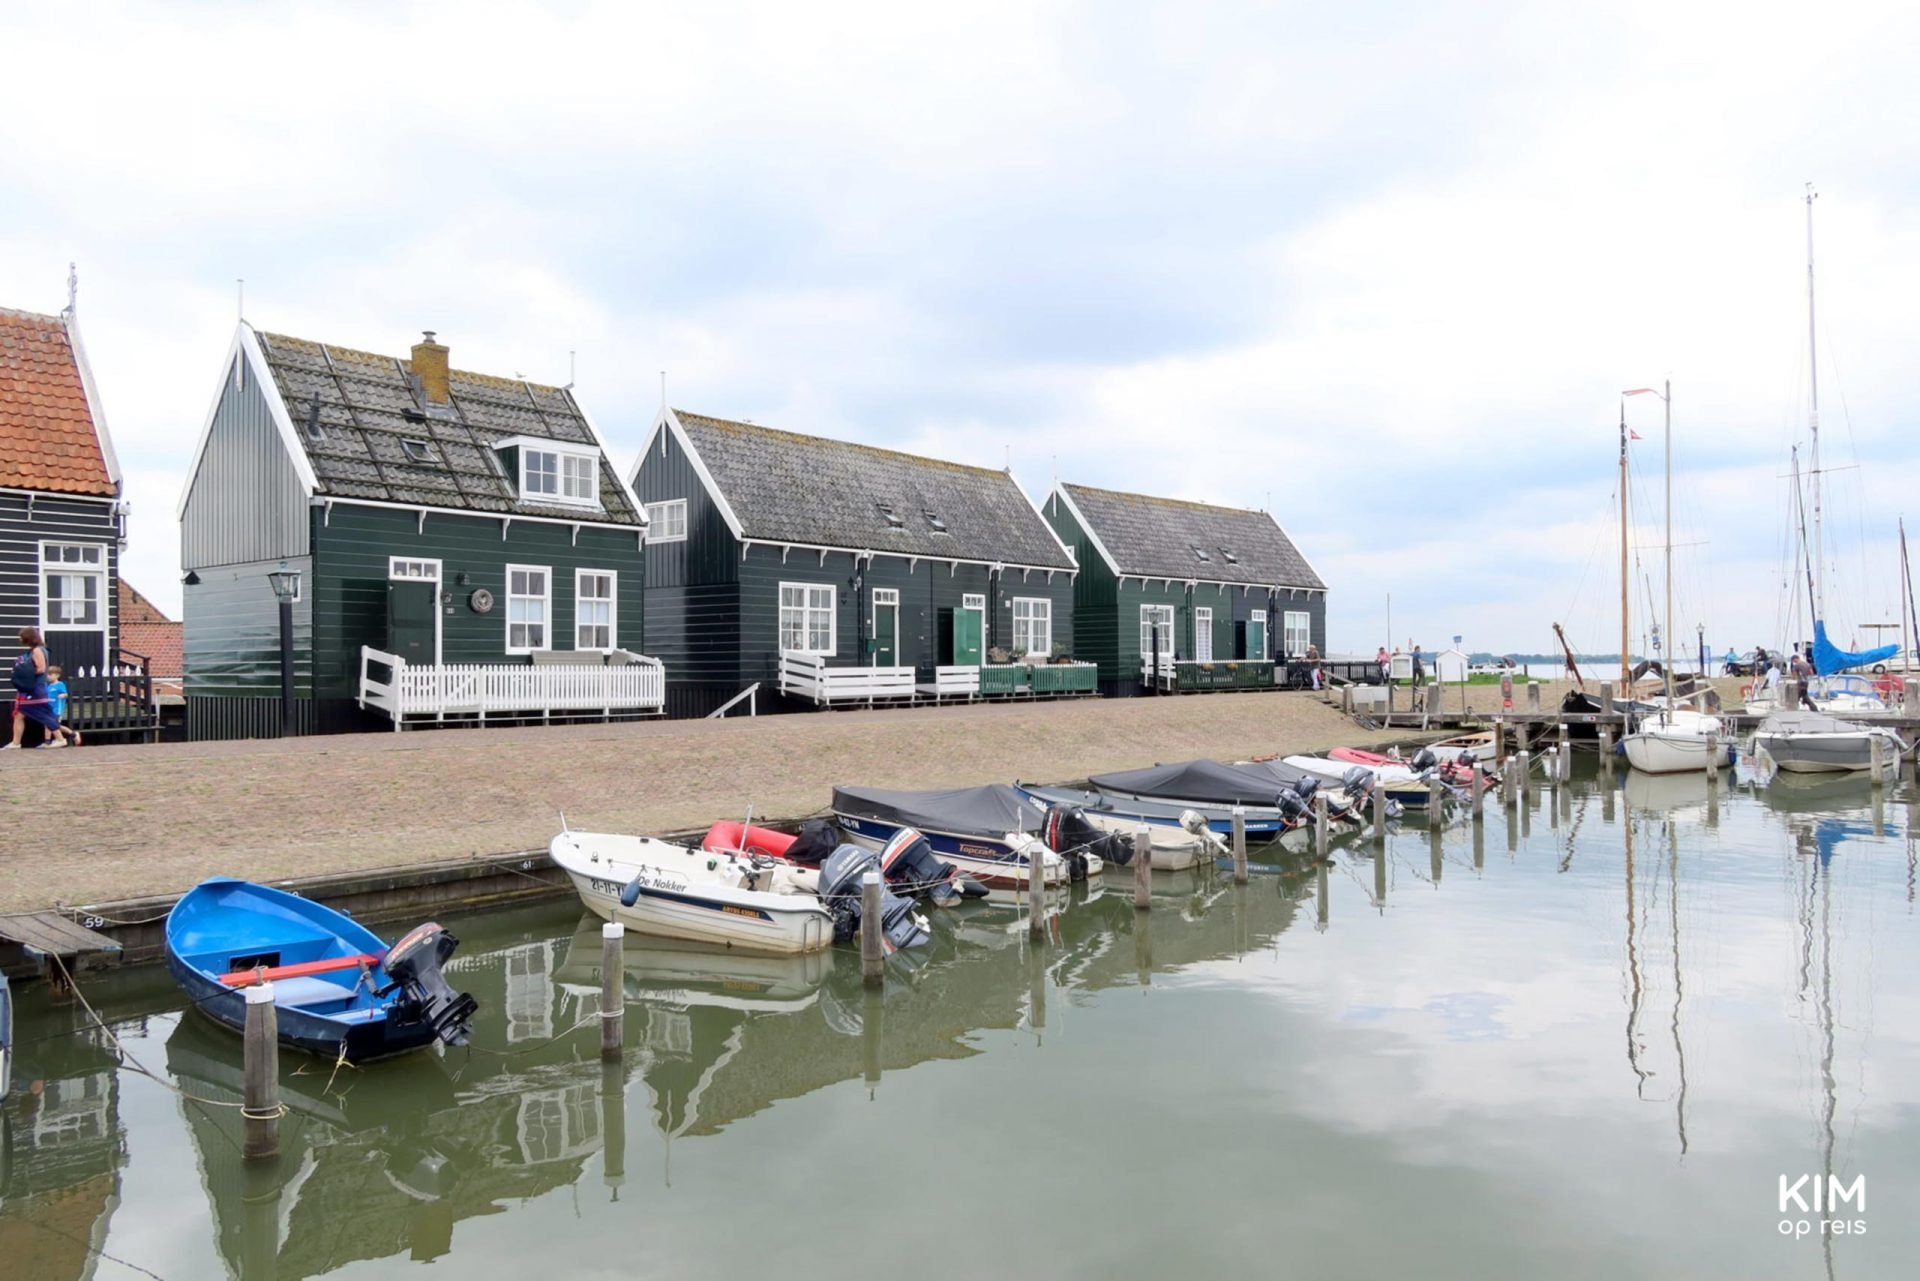 Harbor of Marken - small motorboats in the water and on the side some dark green wooden Marker houses